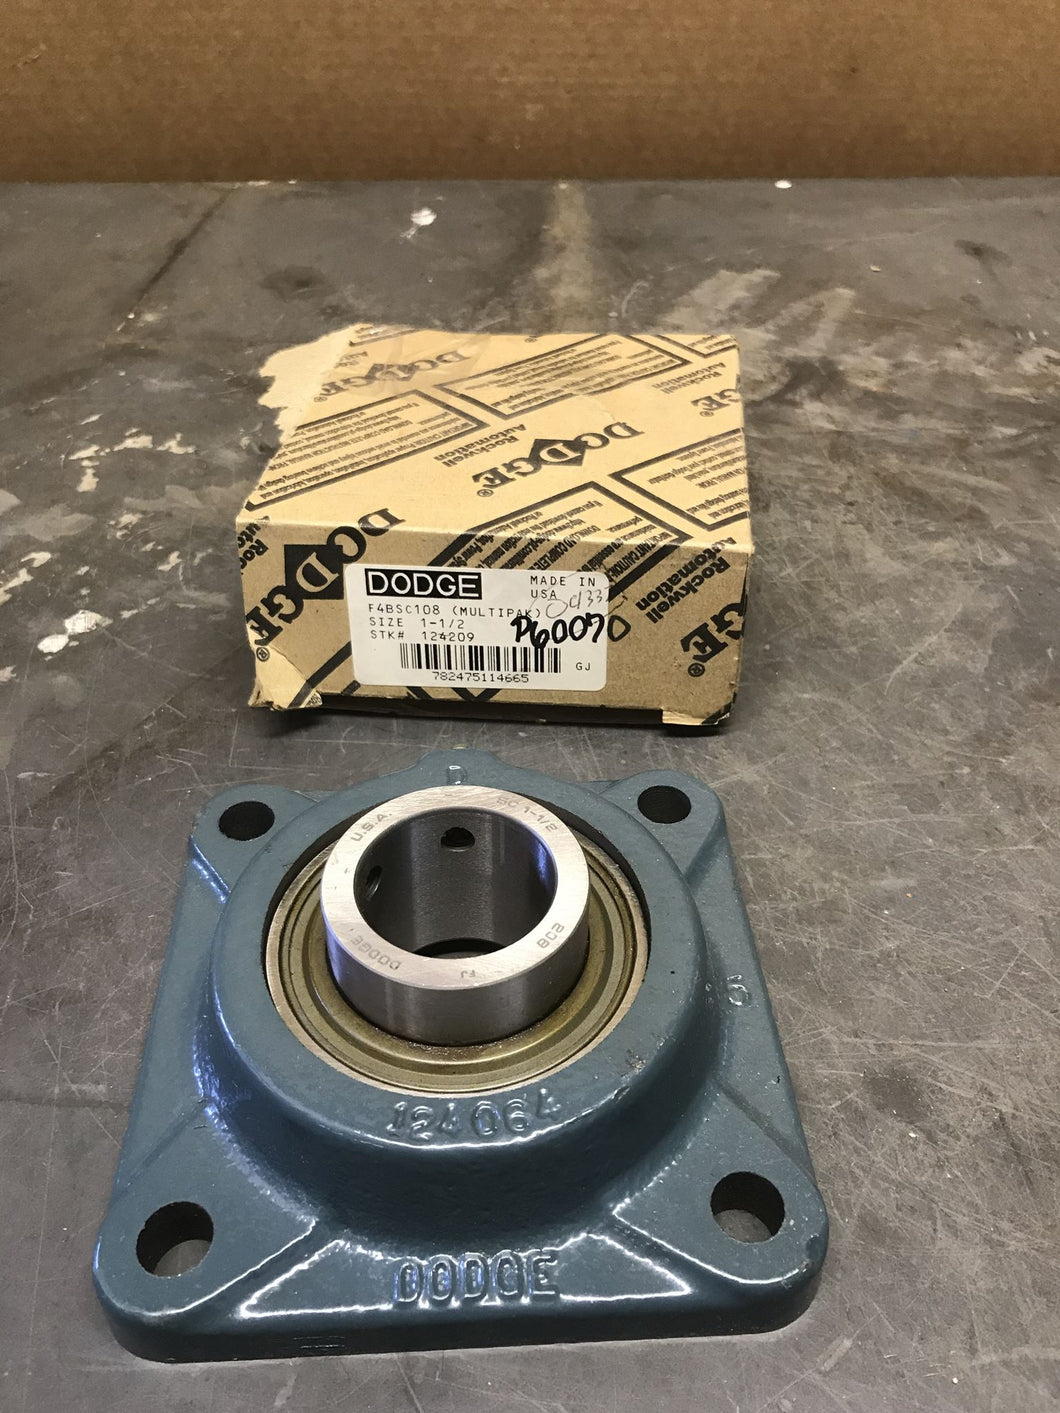 Dodge F4BSC108 1-1/2 124209 Flange-Mount Ball Bearing